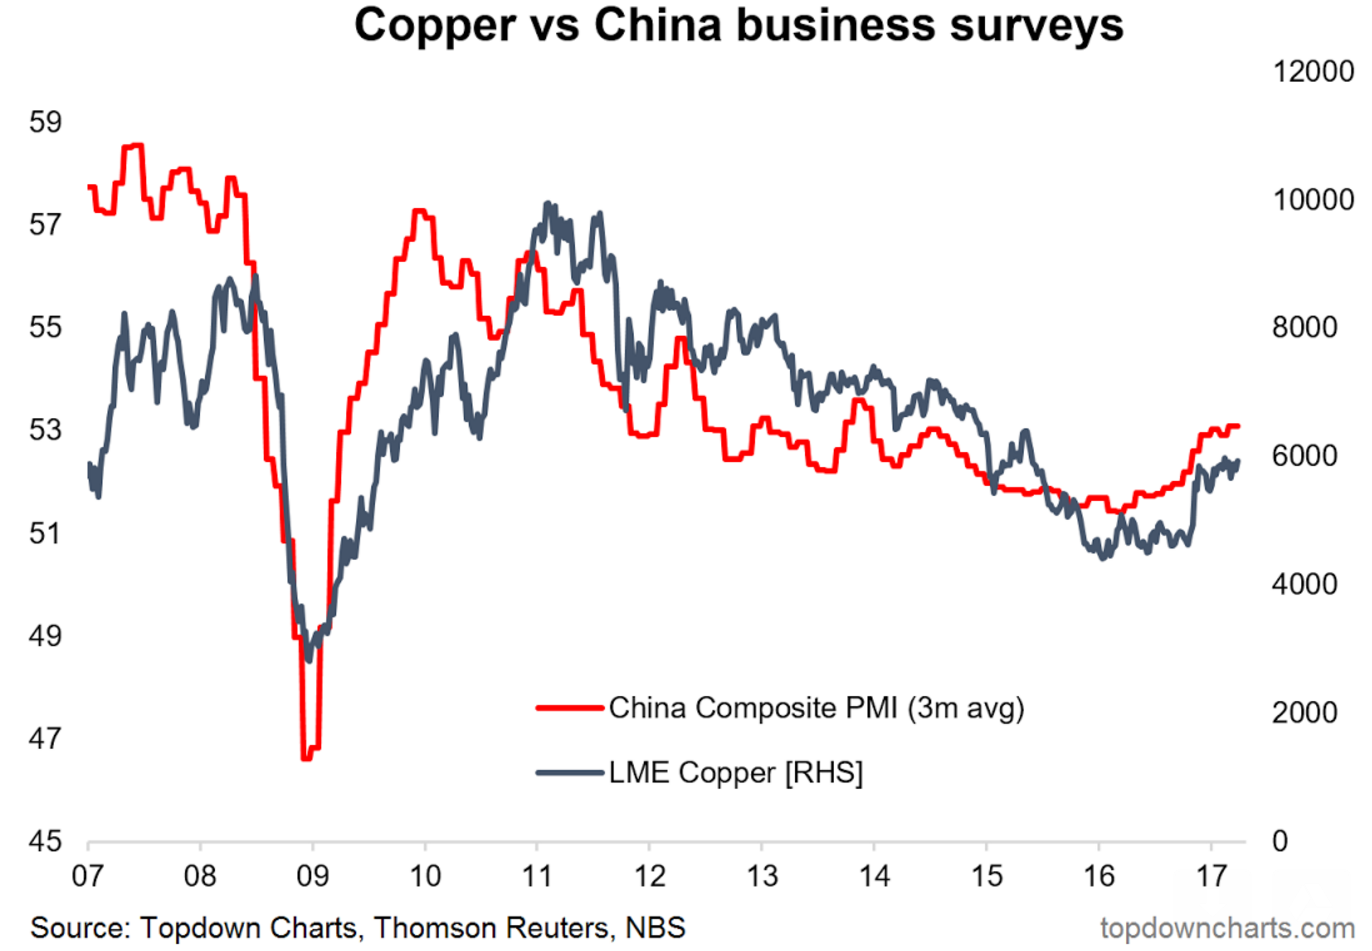 China copper